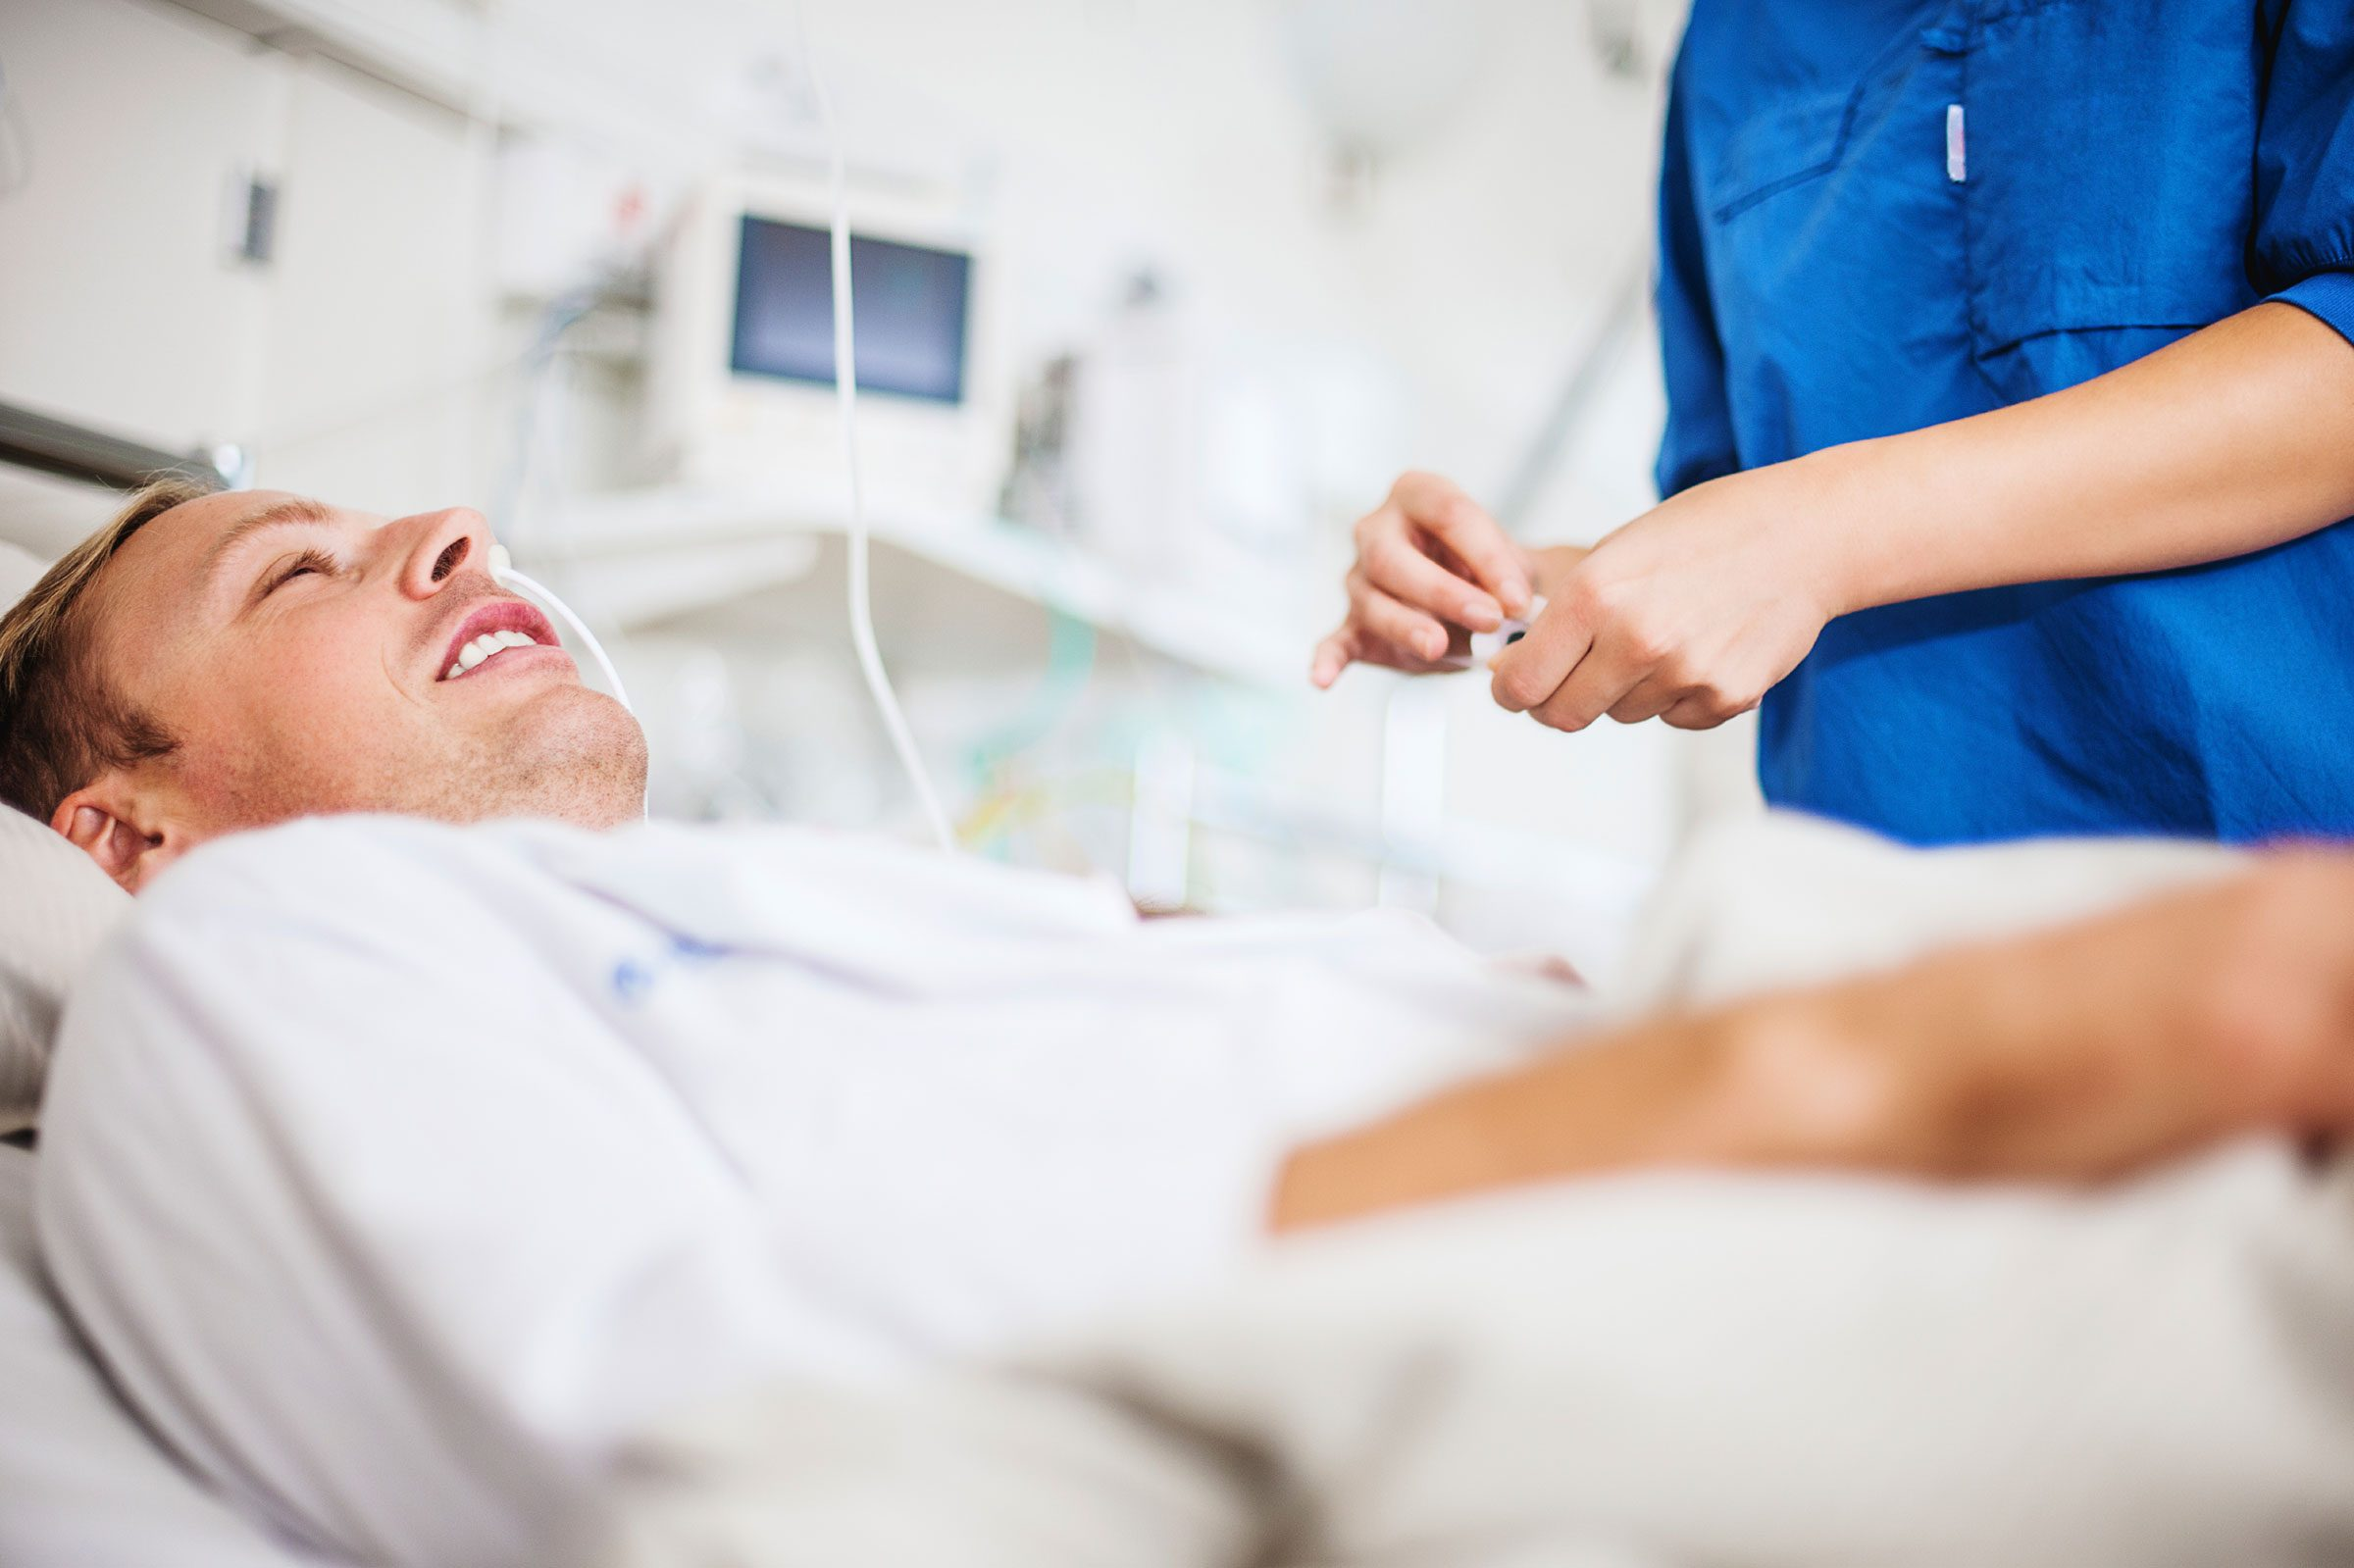 List of necessary things in the hospital